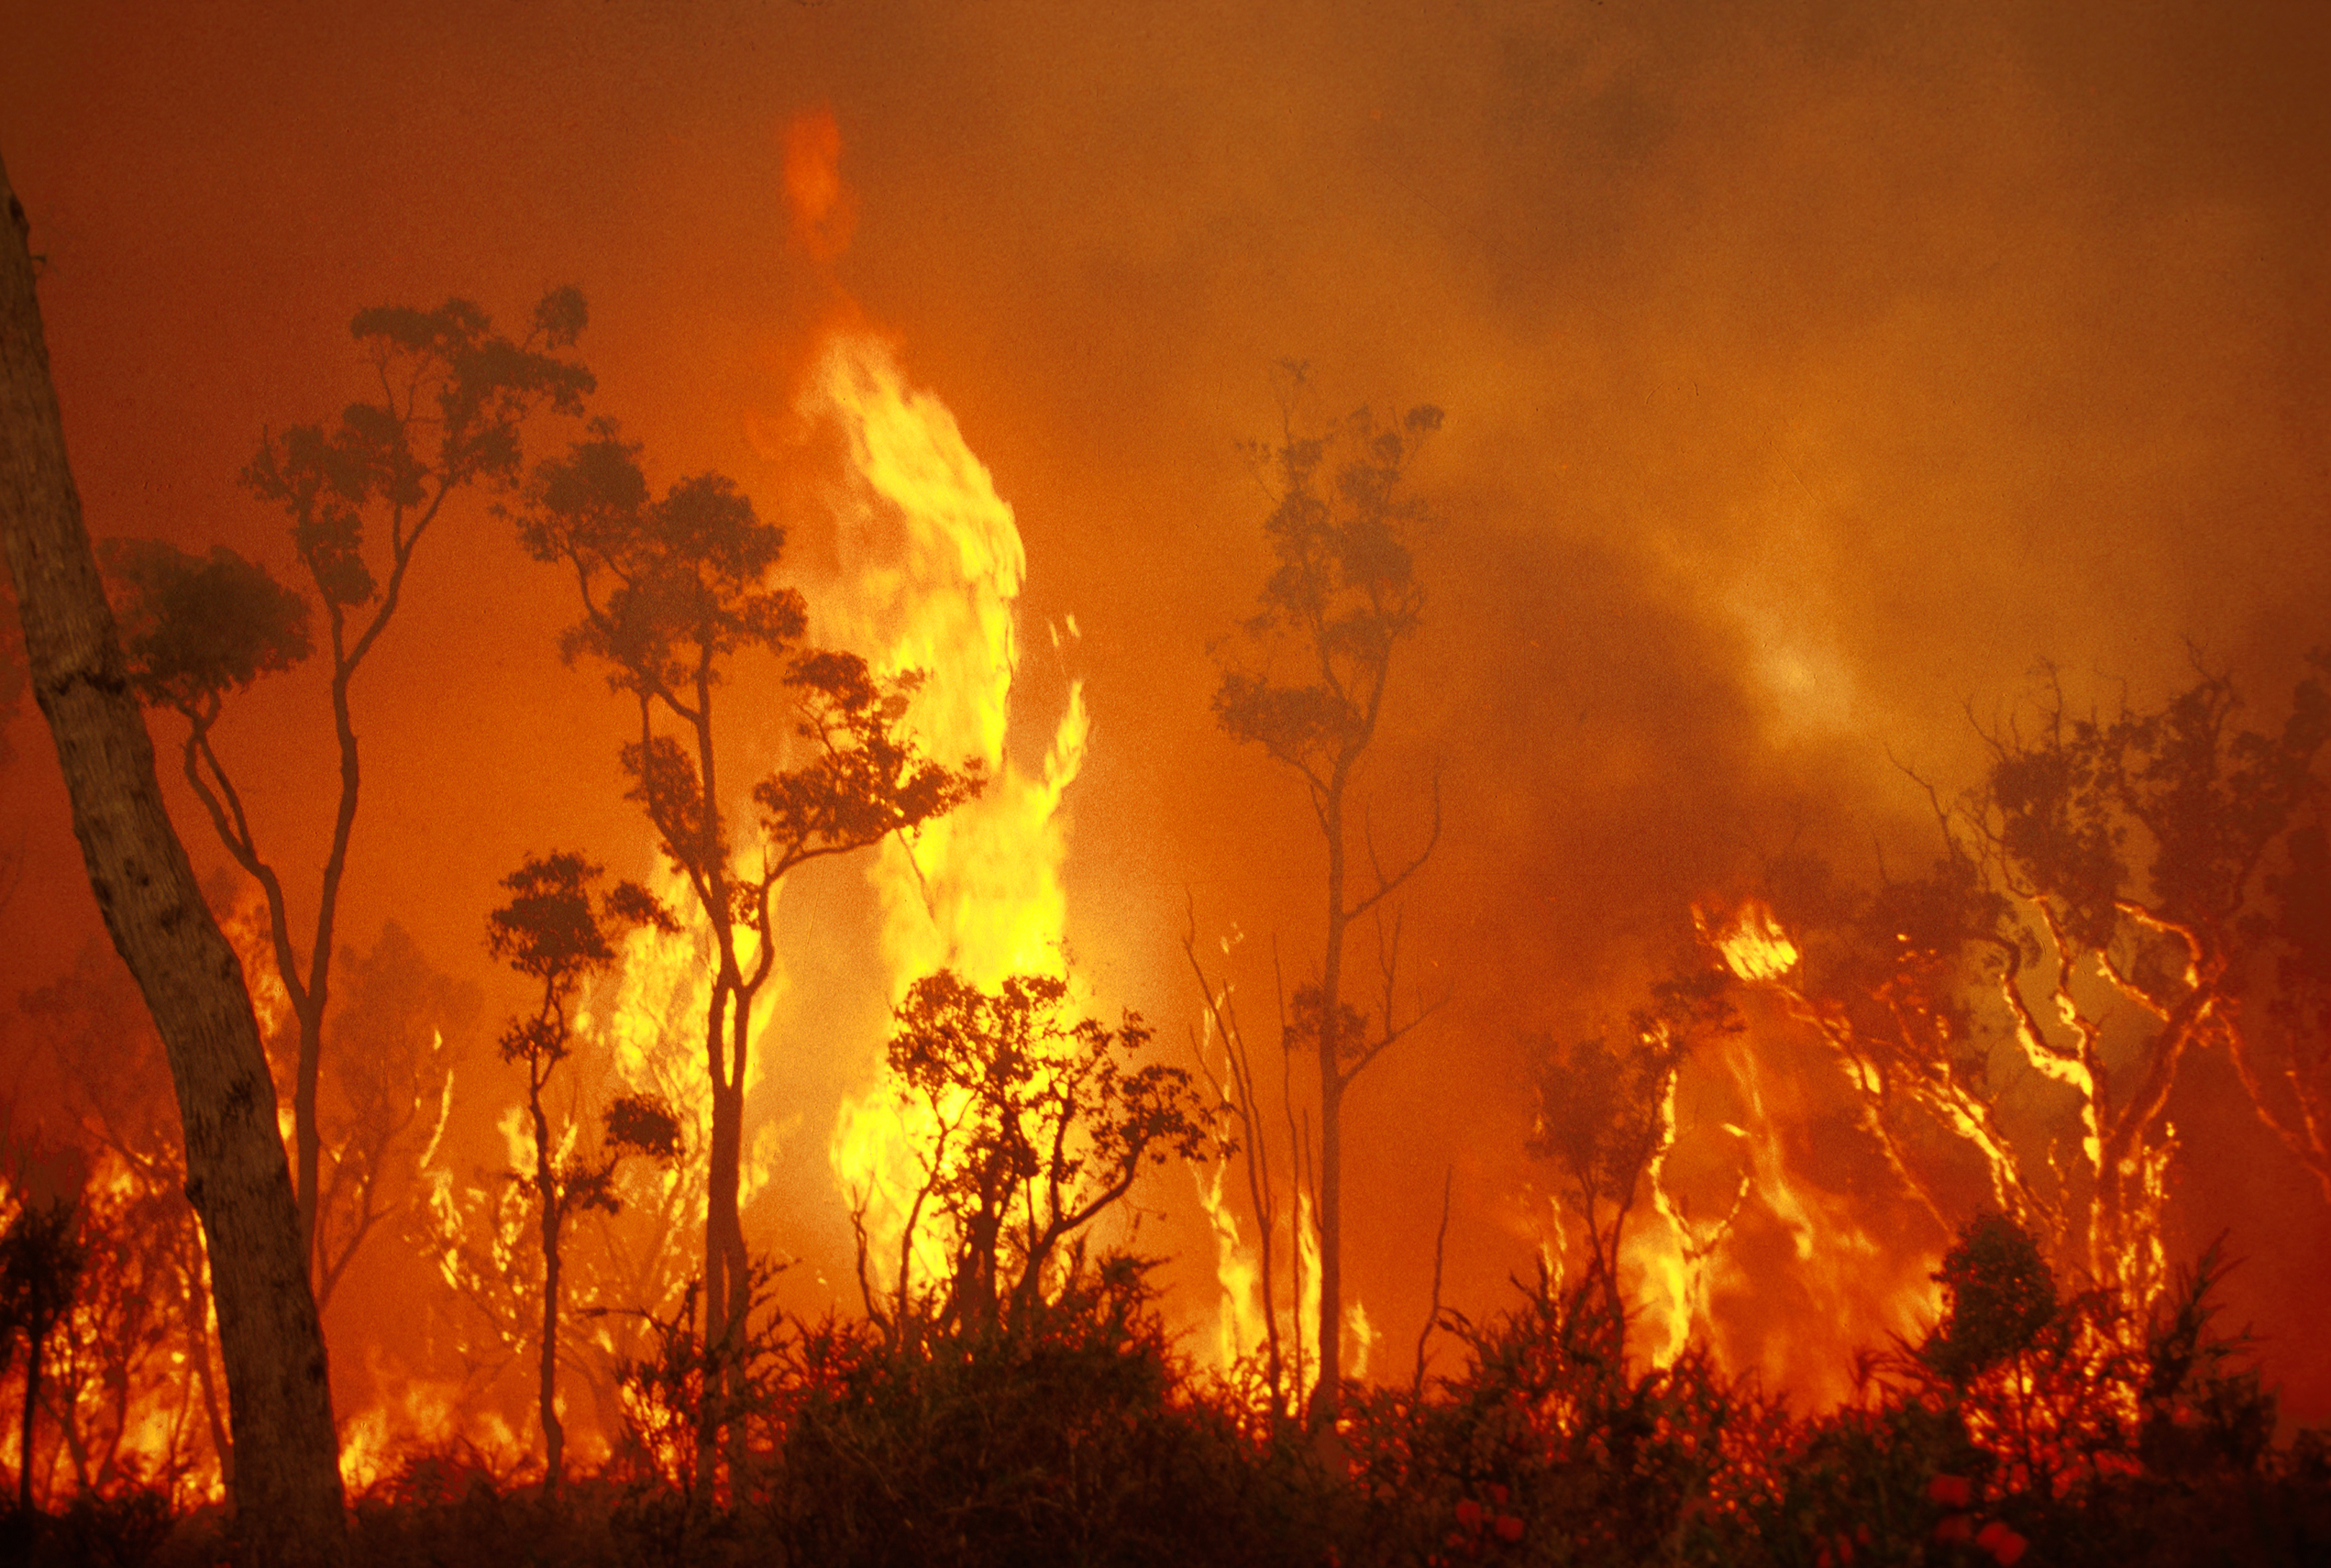 Raging bushfire showing flames leaping above trees.